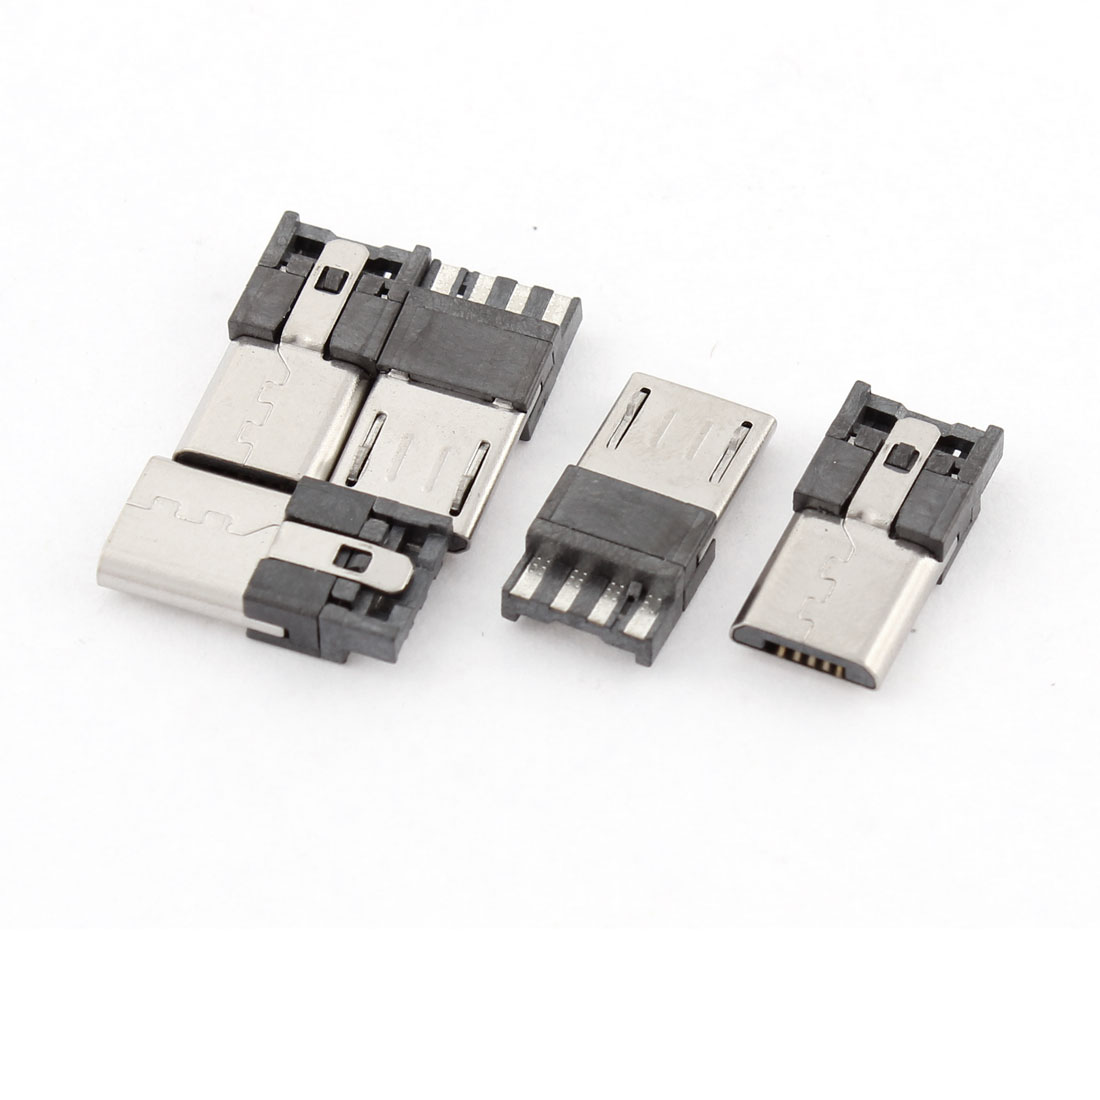 5 Pcs Type B Micro USB Male 5 Pin Jack Port Socket Connector Repair Parts